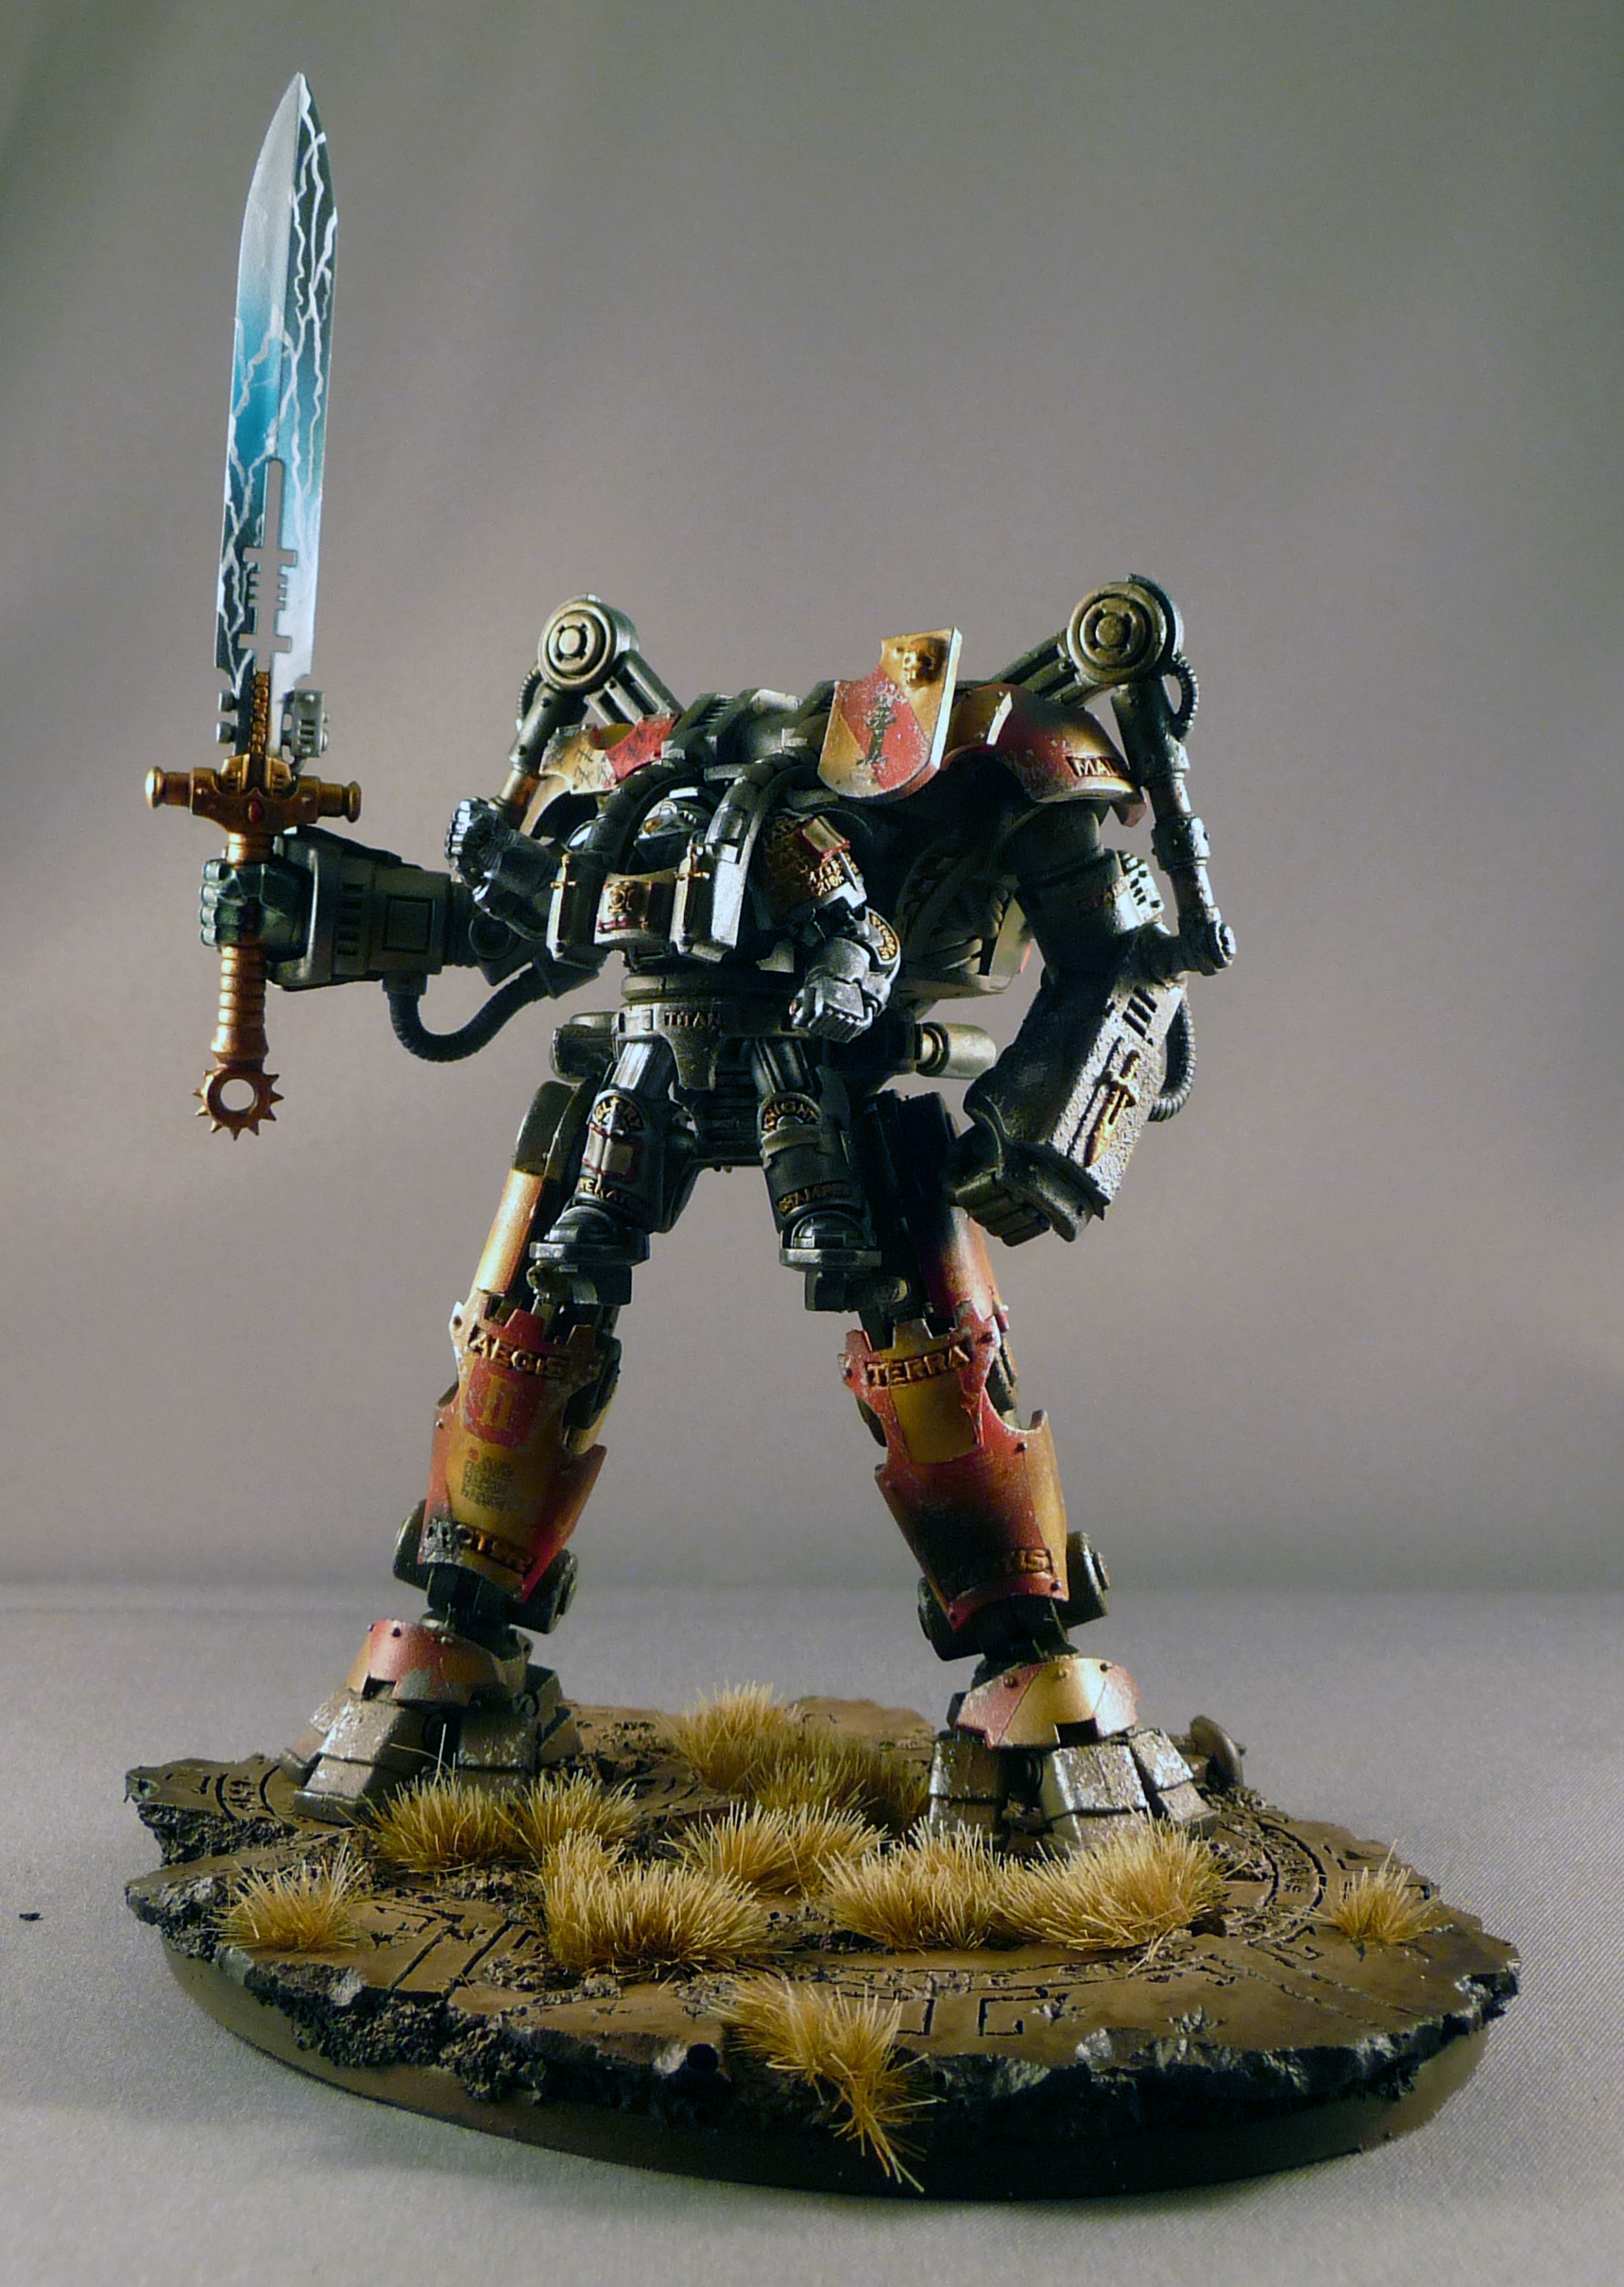 2nd_dreadknight2